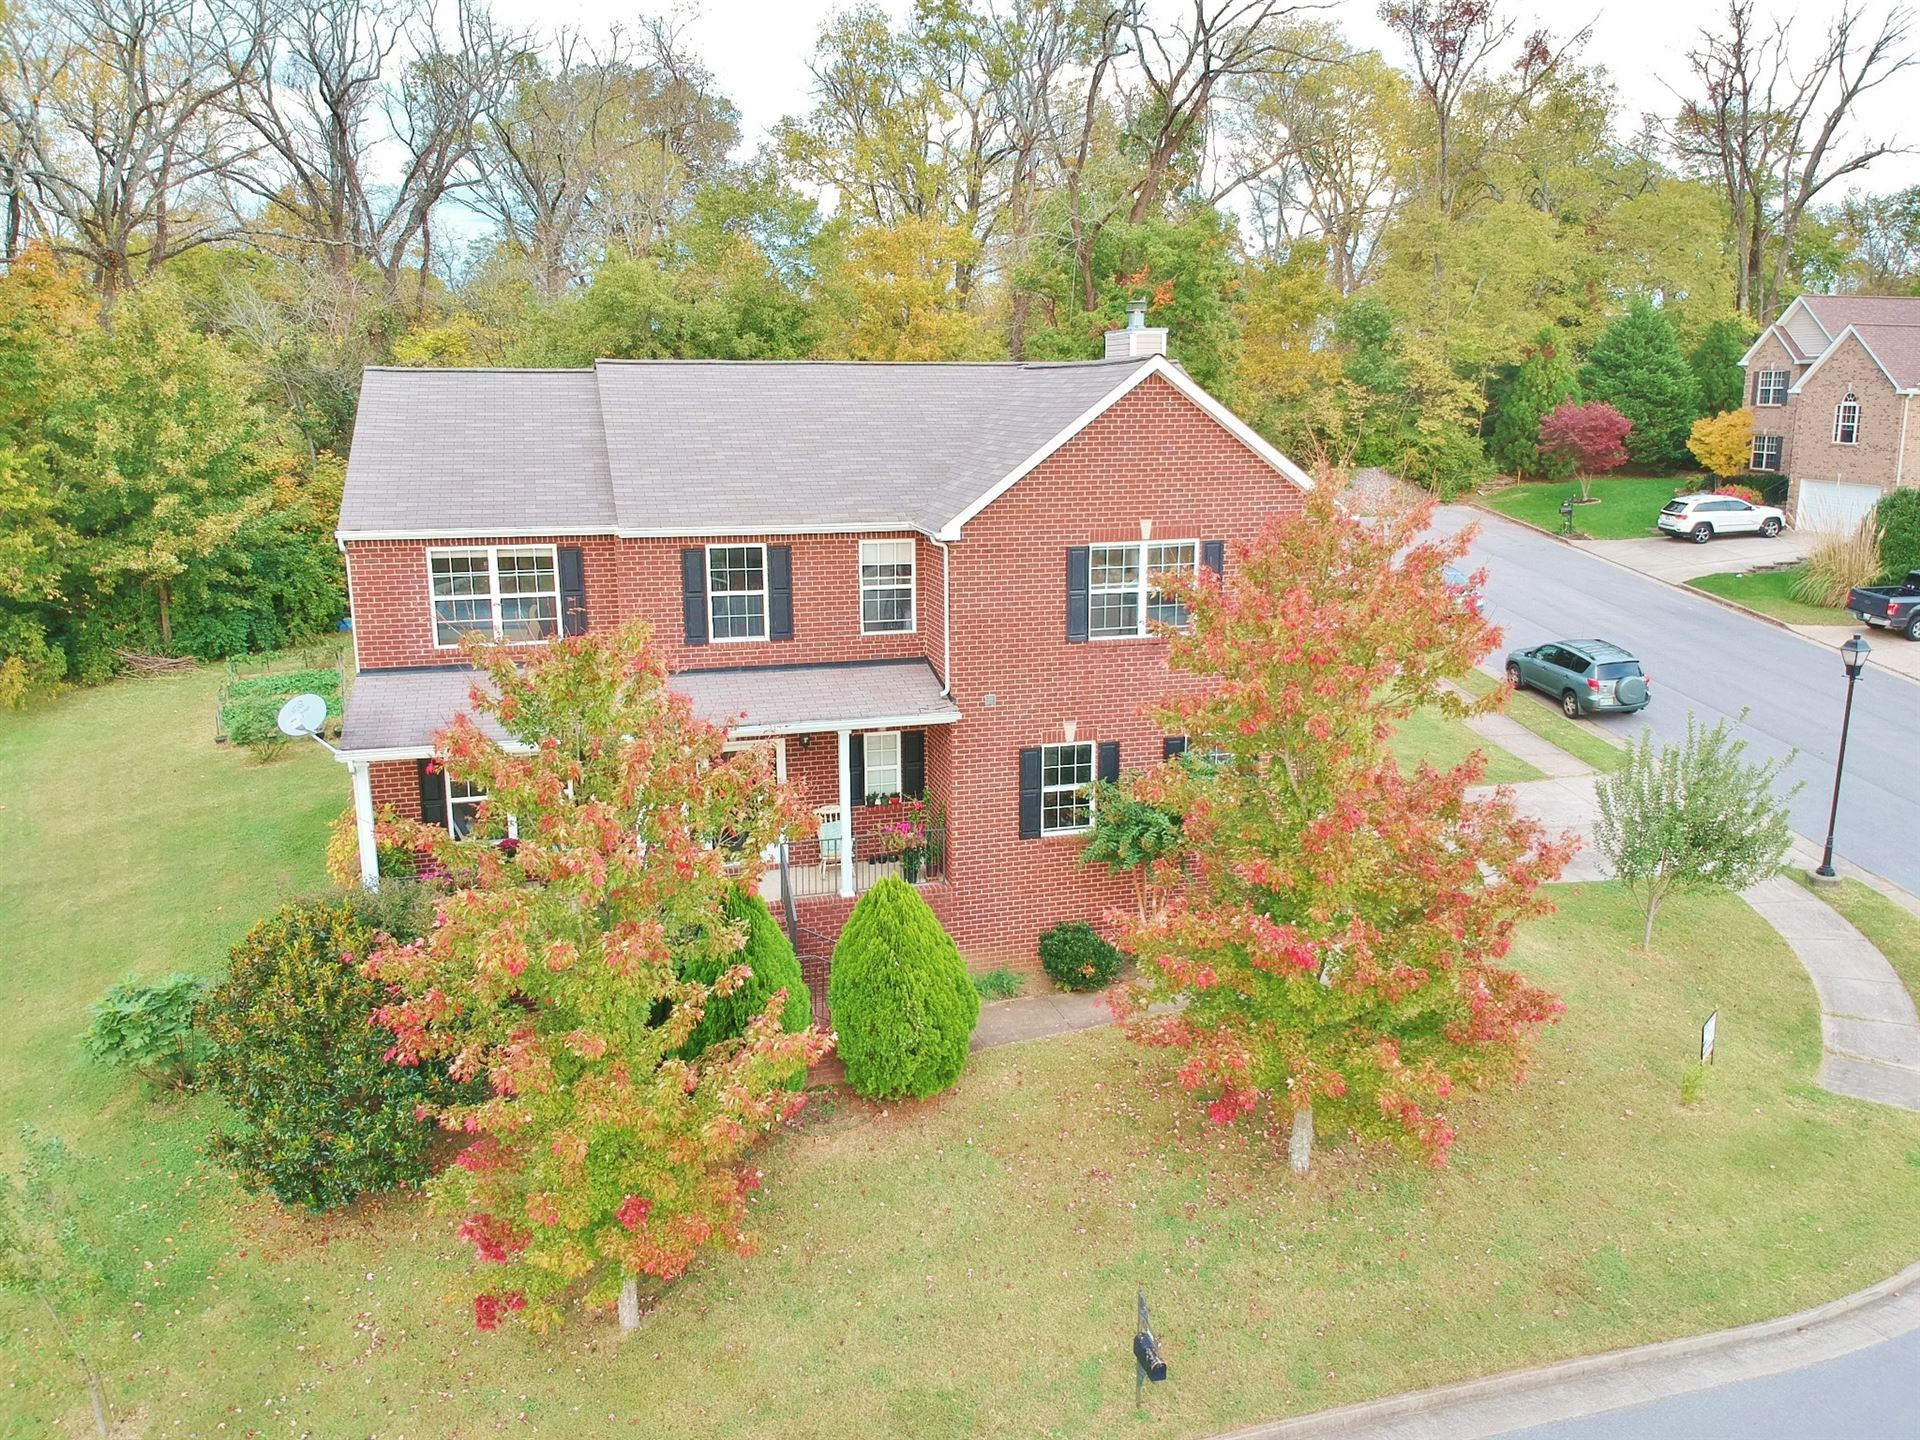 2800 Haversham Ct, Antioch, TN 37013 - MLS#: 2210265